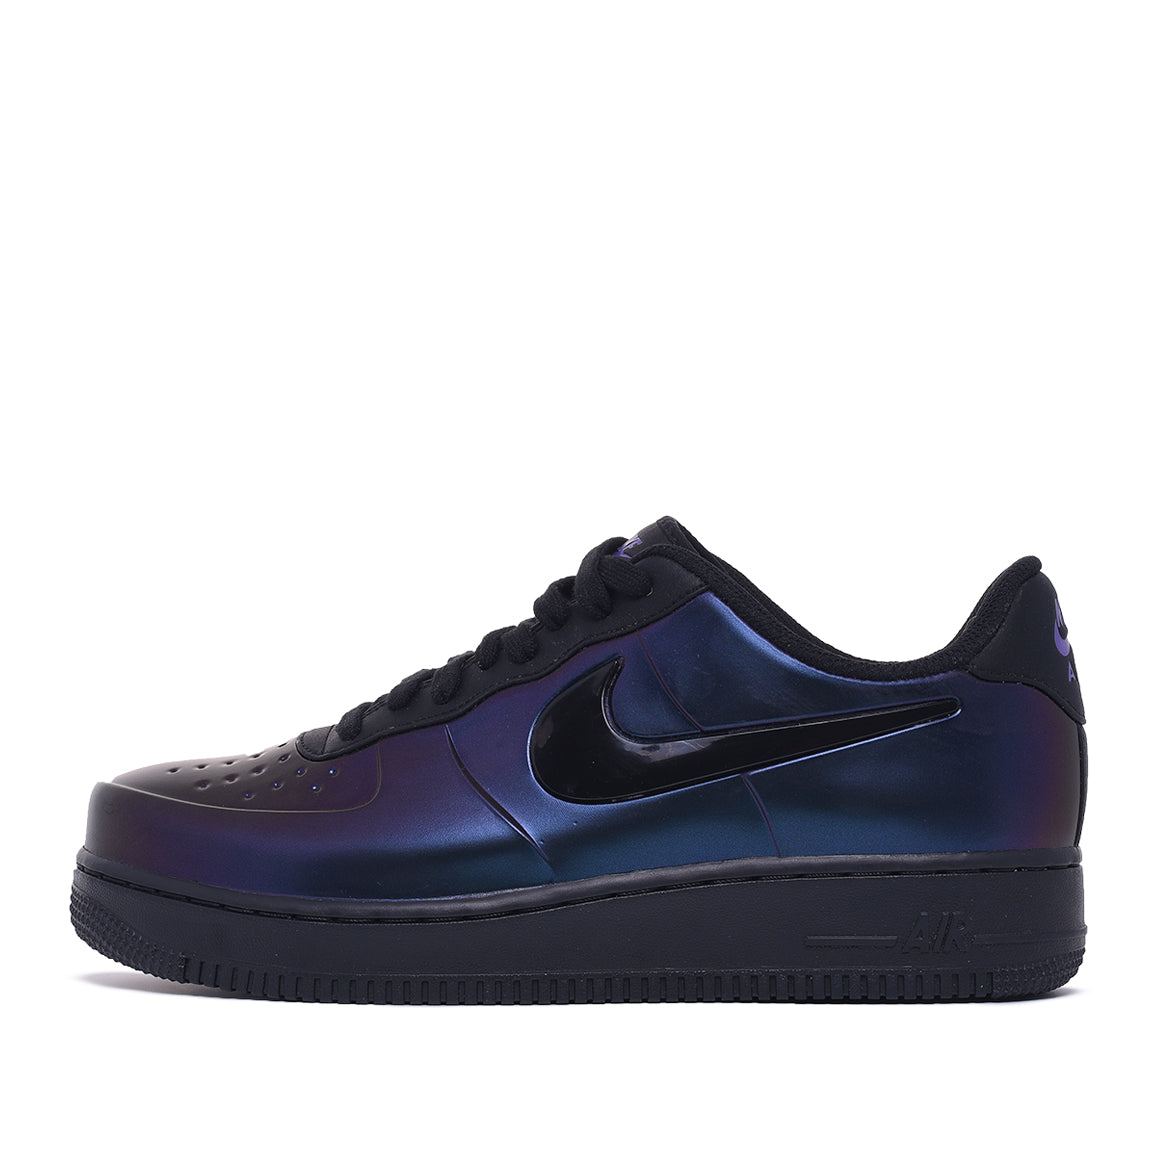 promo code 5ecd3 4e68d AIR FORCE 1 FOAMPOSITE PRO CUP